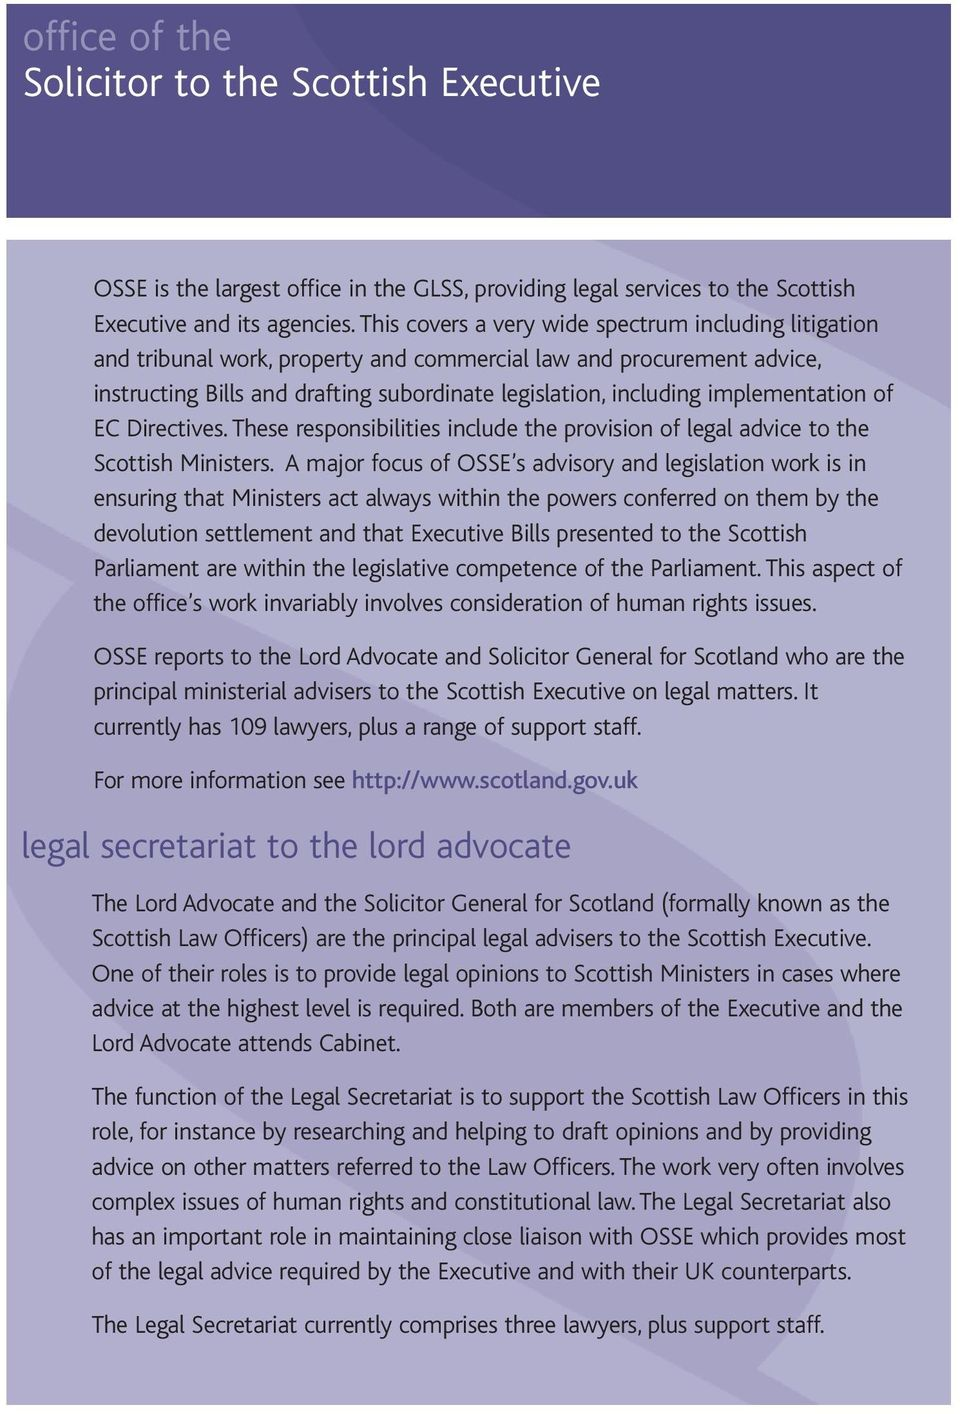 implementation of EC Directives. These responsibilities include the provision of legal advice to the Scottish Ministers.